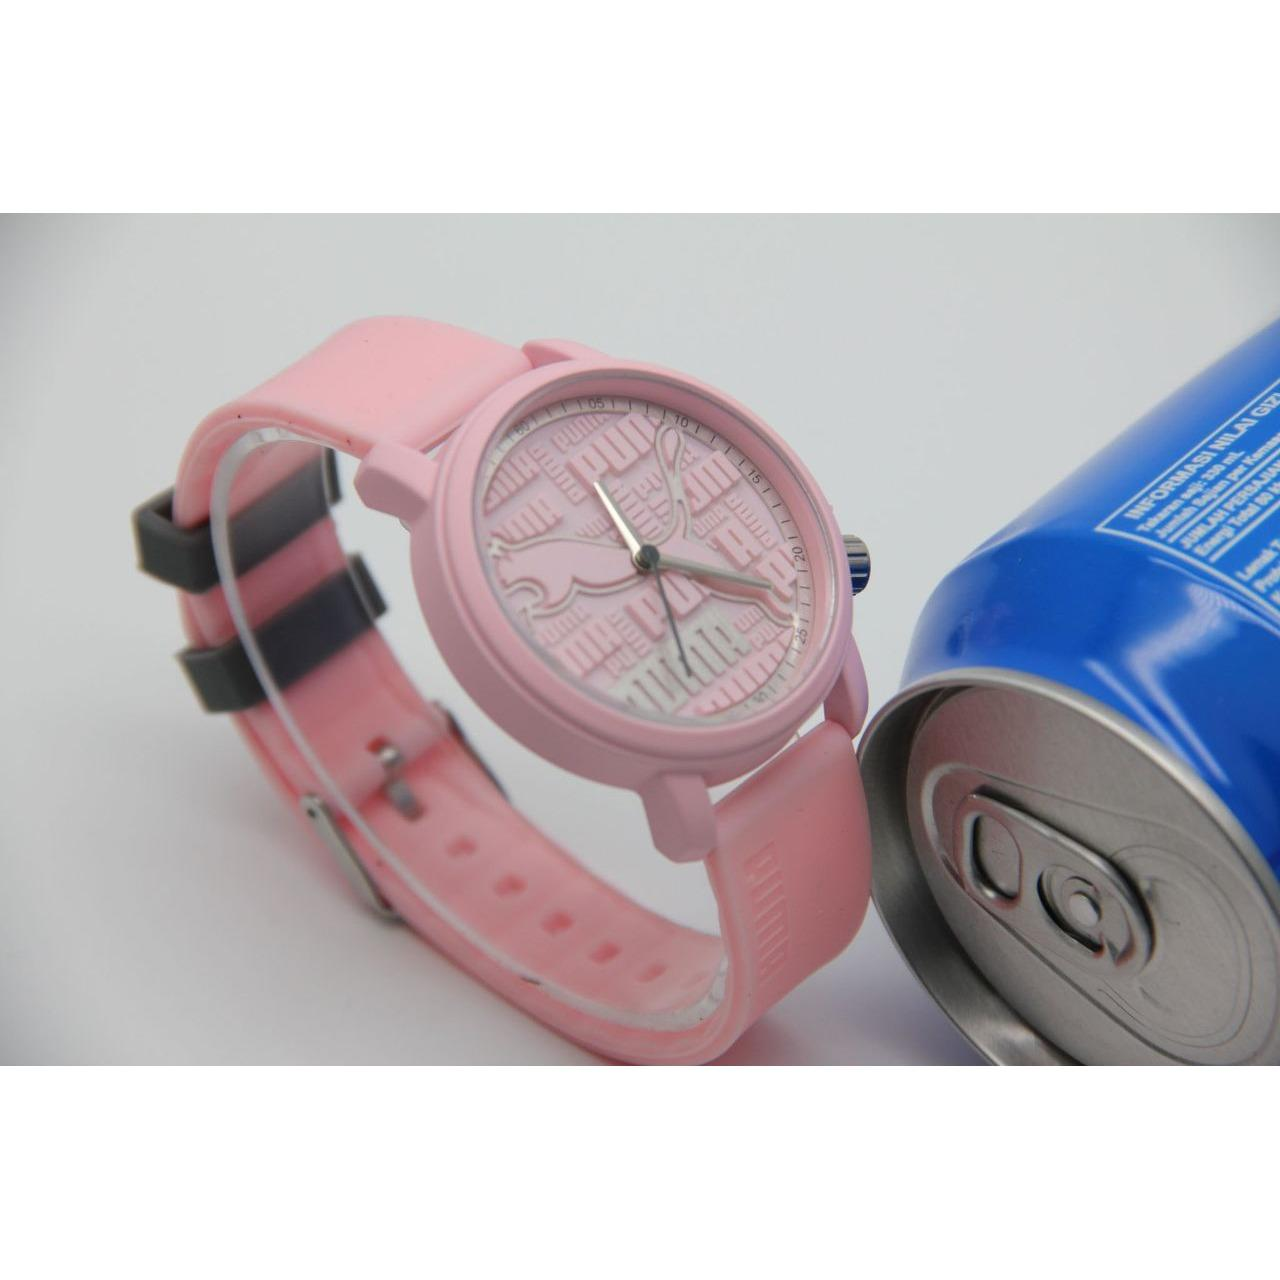 Jam Tangan Puma Sporty Kasual Stripe Rubber Free Box & Battery Cadangan